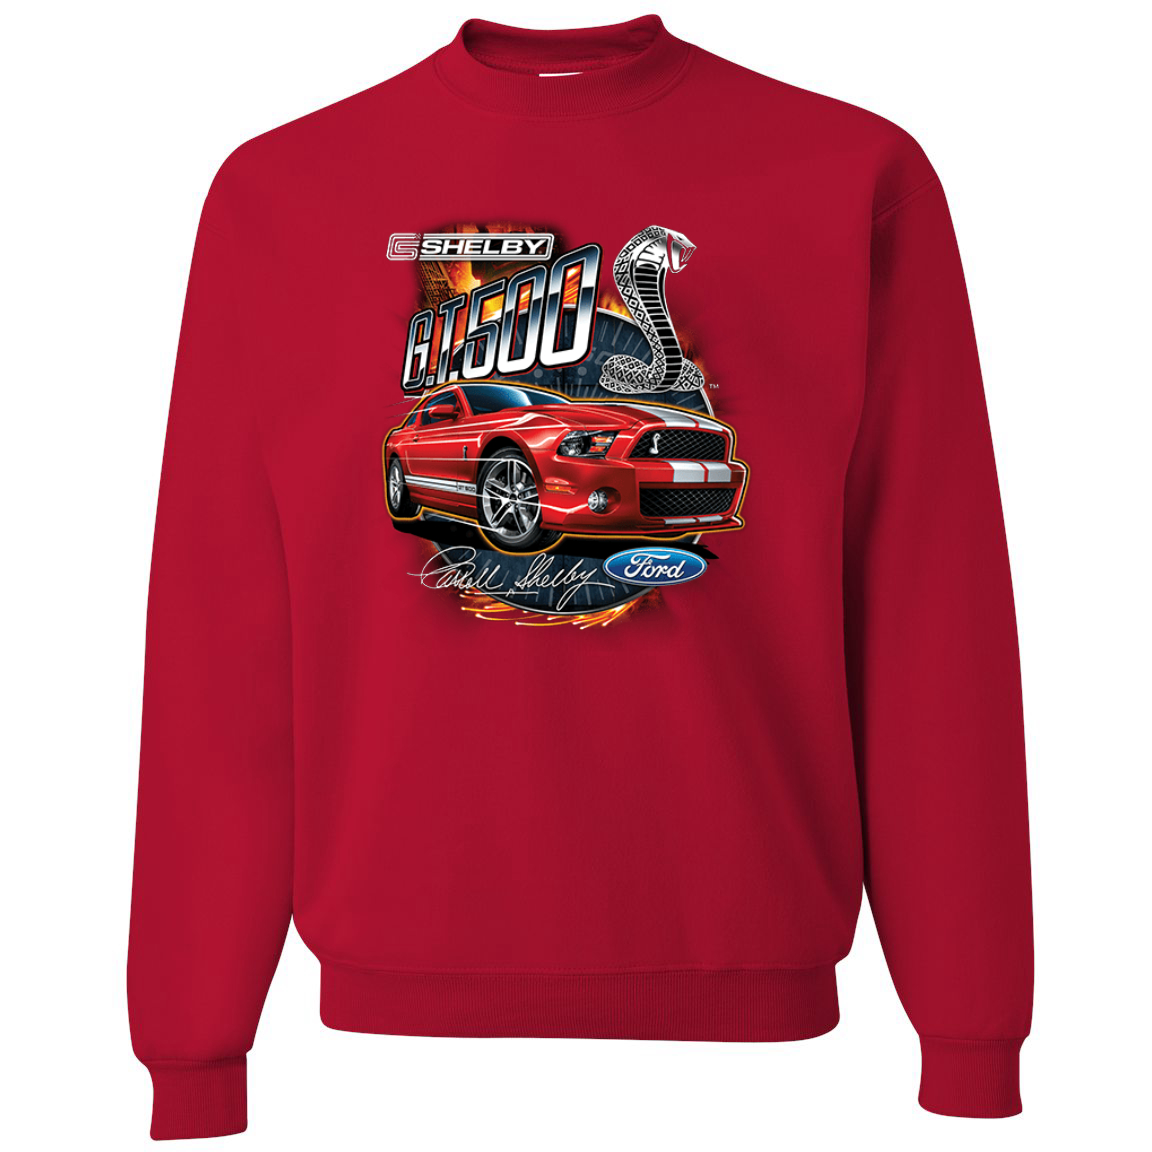 Shelby G.T. 500 Cobra Red Speedster Ford Motors Classic Cars and Trucks Crewneck Graphic Sweatshirt